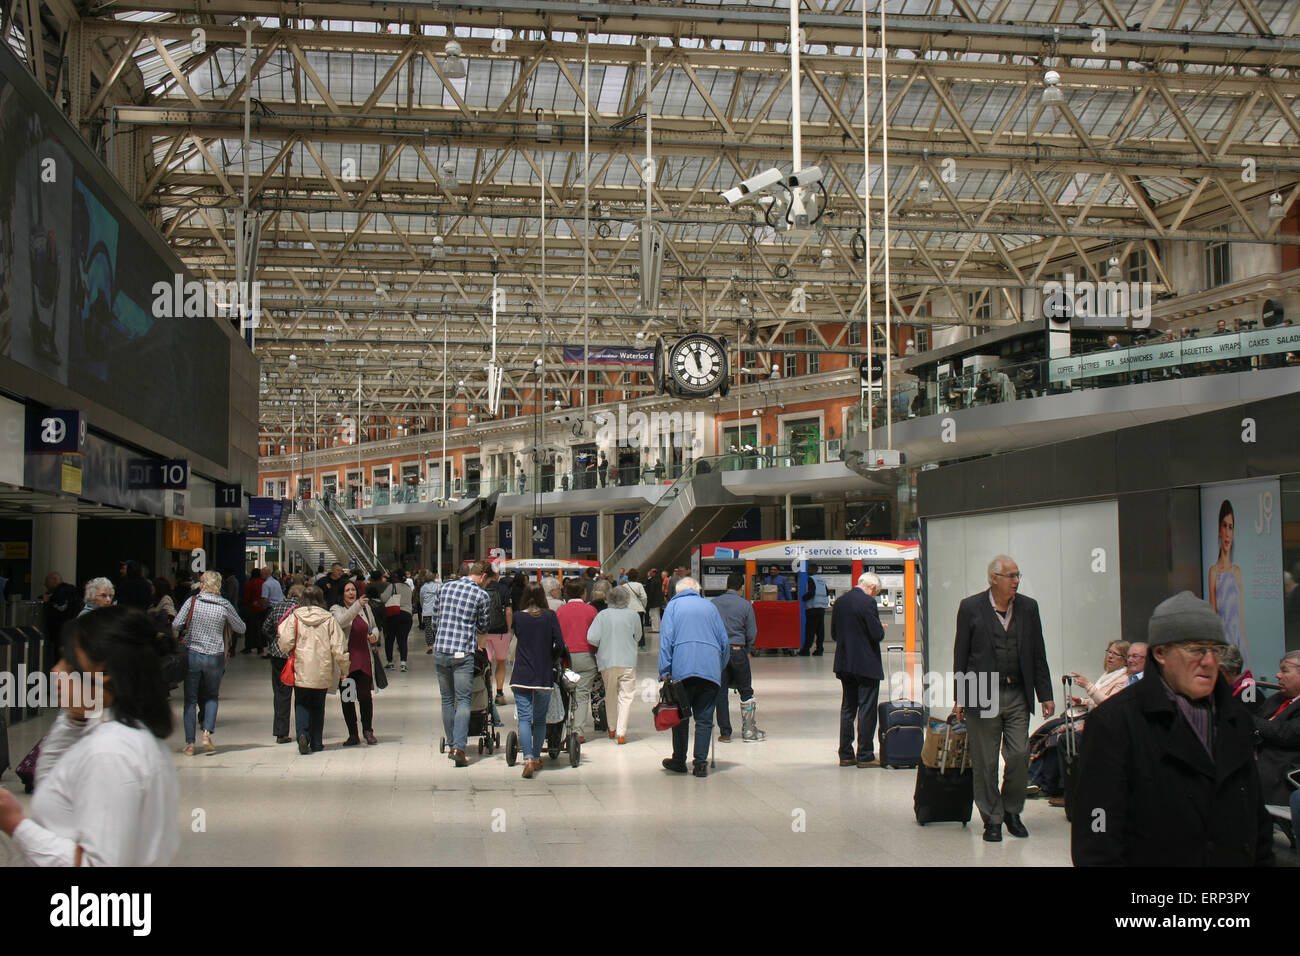 LONDON WATERLOO STATION CONCOURSE - Stock Image